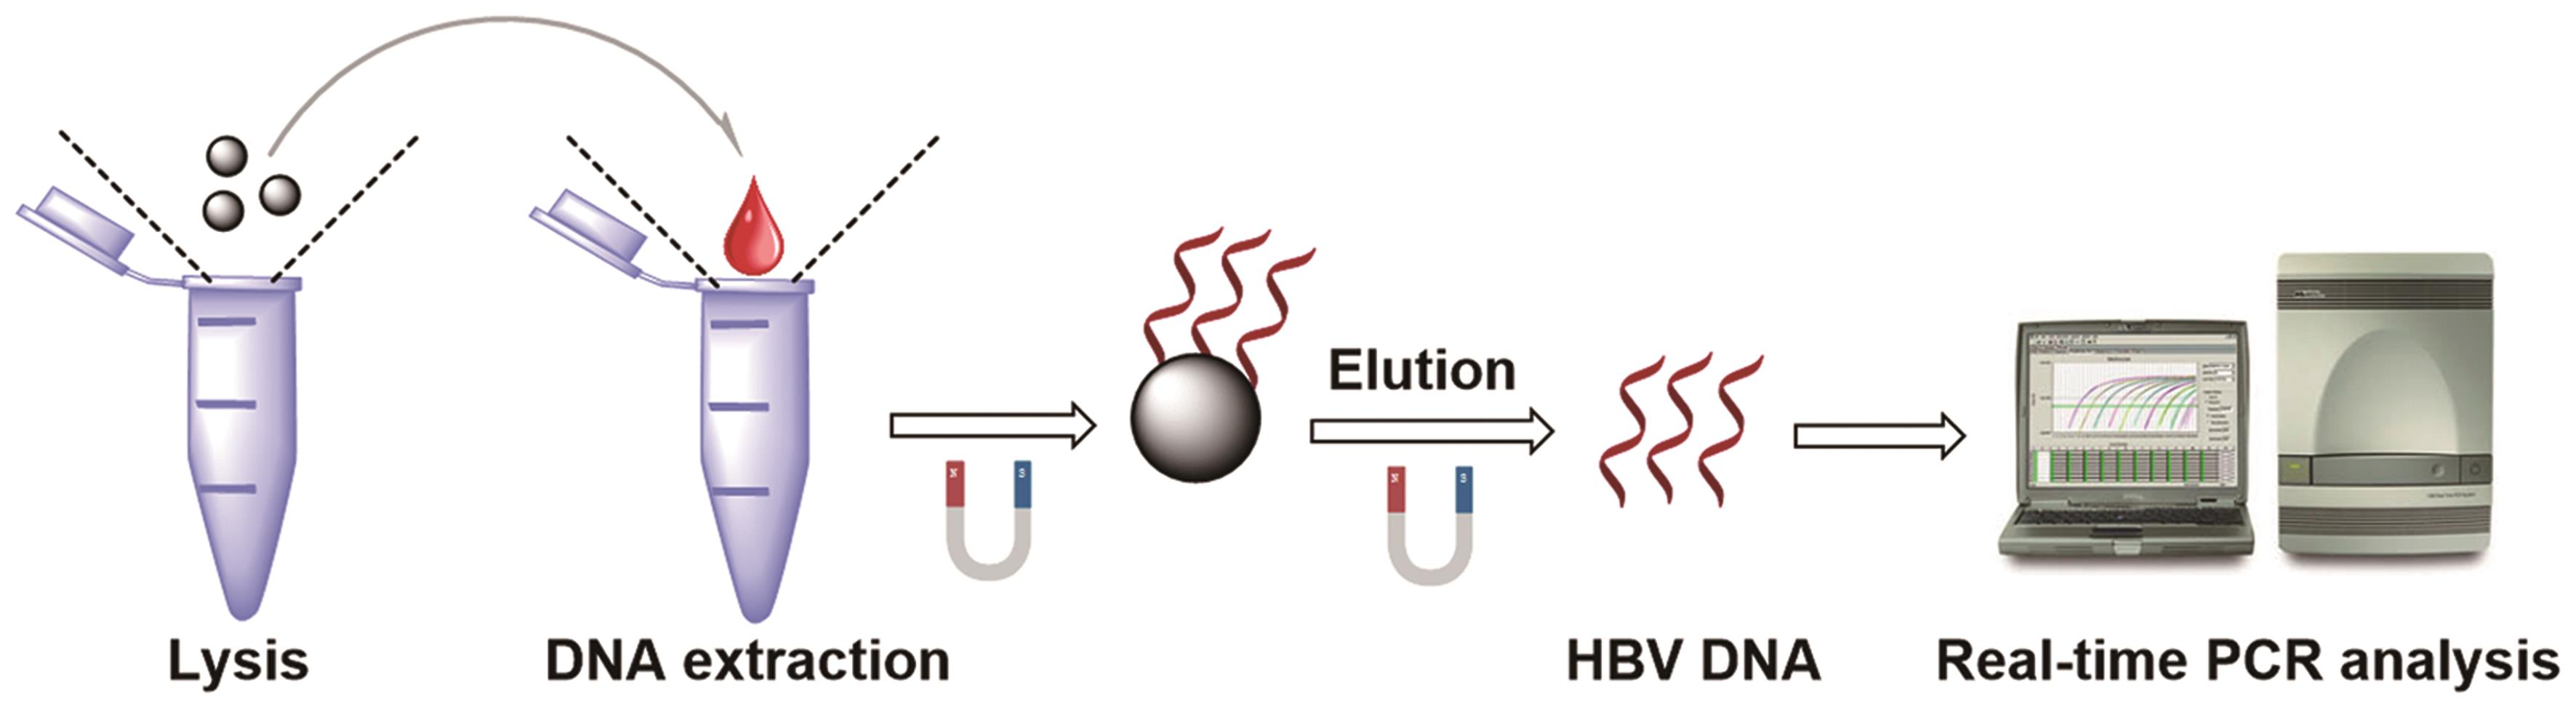 Process of real-time PCR based on magnetic nanoparticles for detecting HBV DNA.